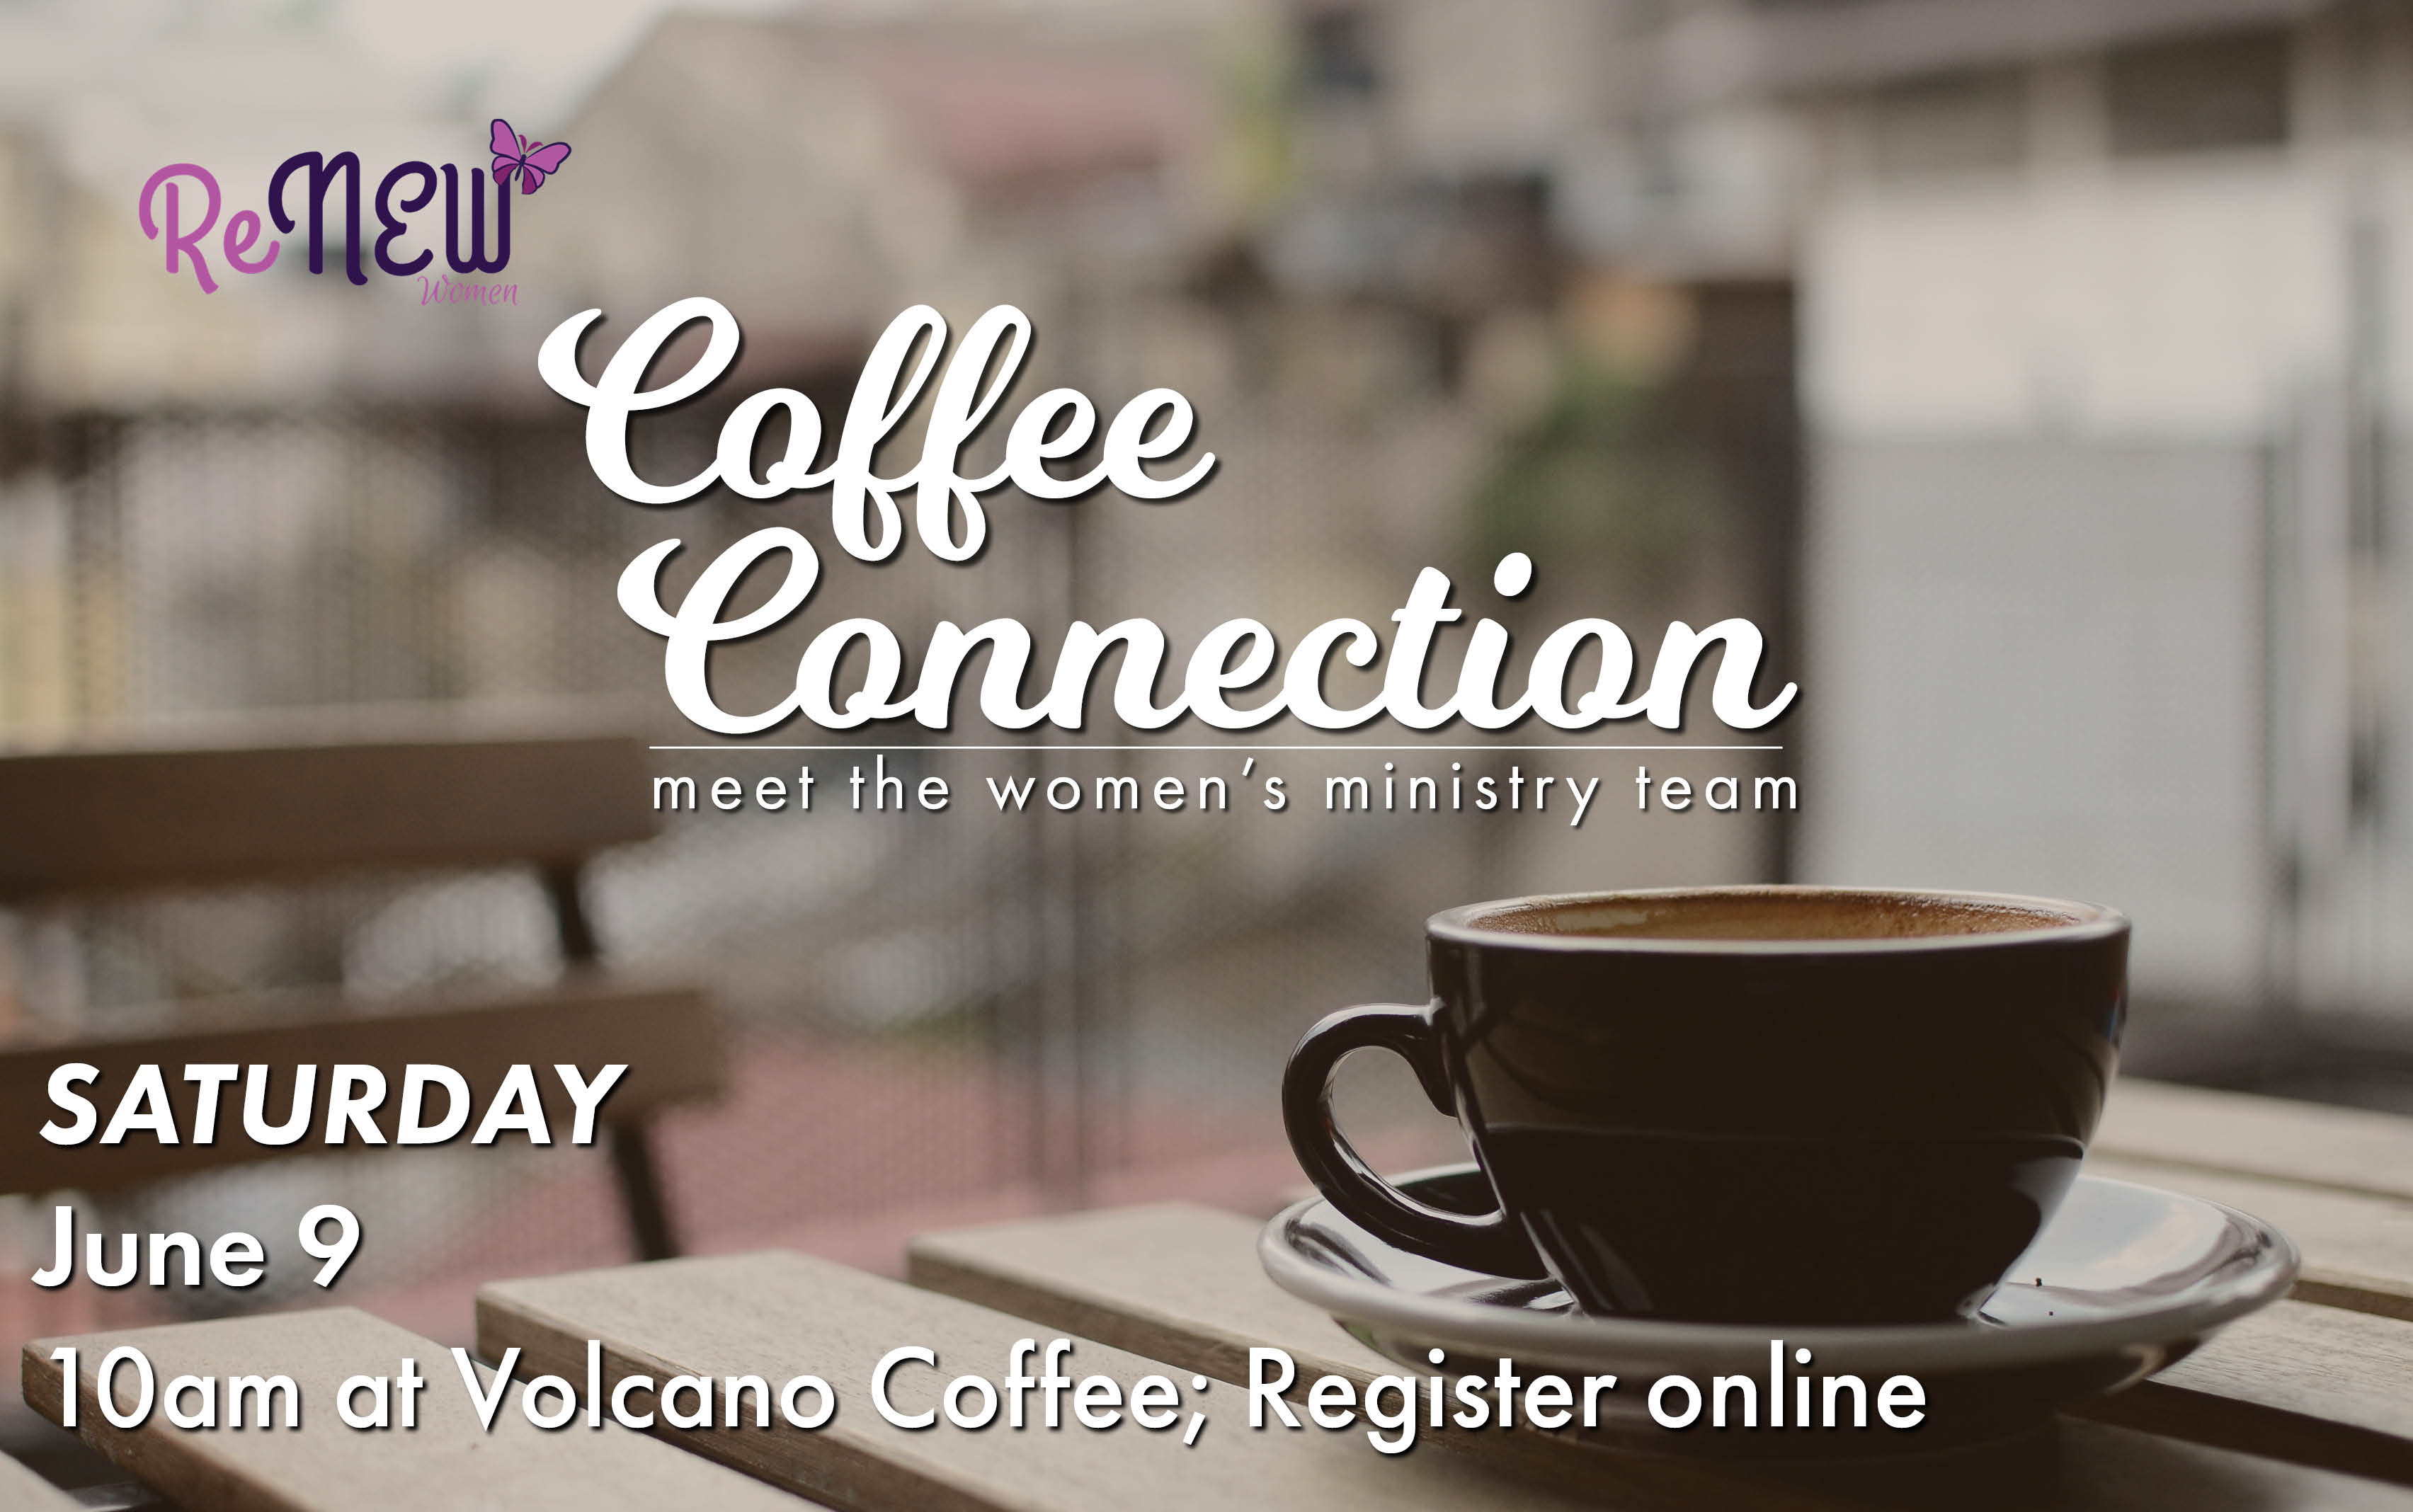 2018 06 coffee connection screen